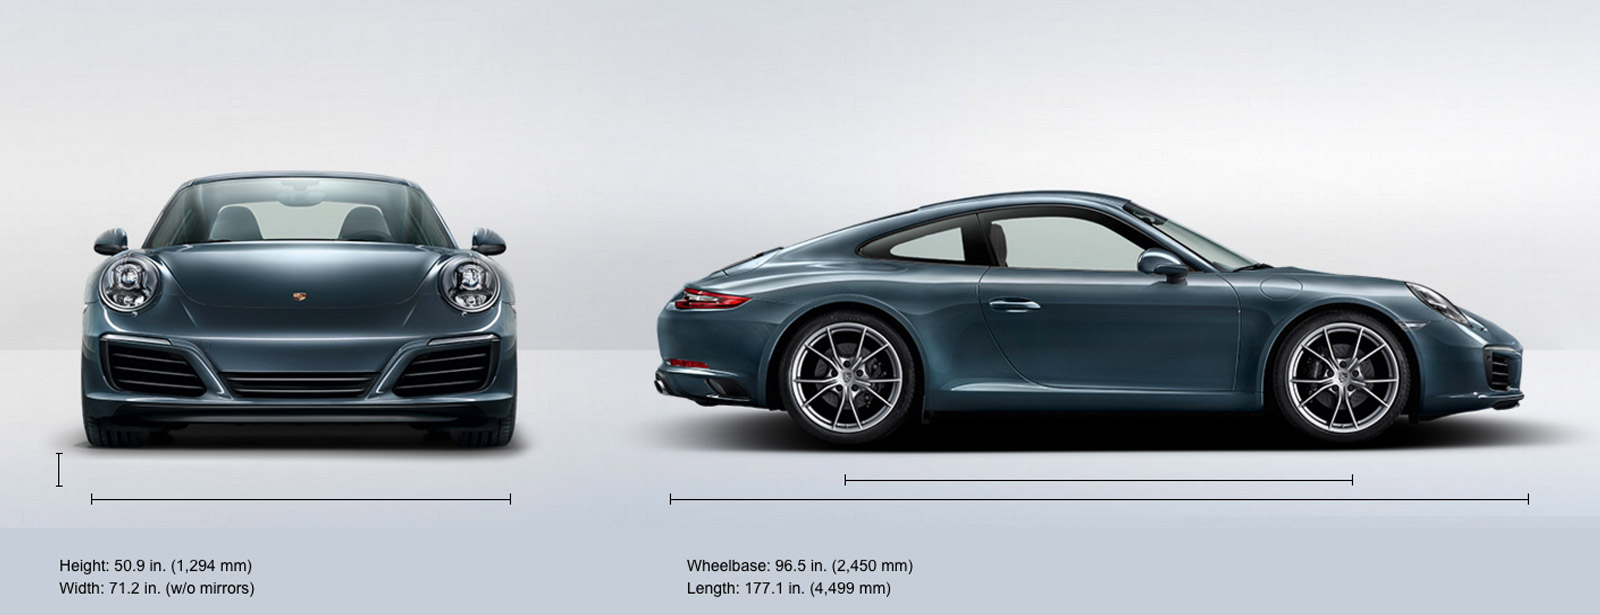 https://apollo.carweek.com/usite/1132/images/2016-Posche-911-specs-1.jpg